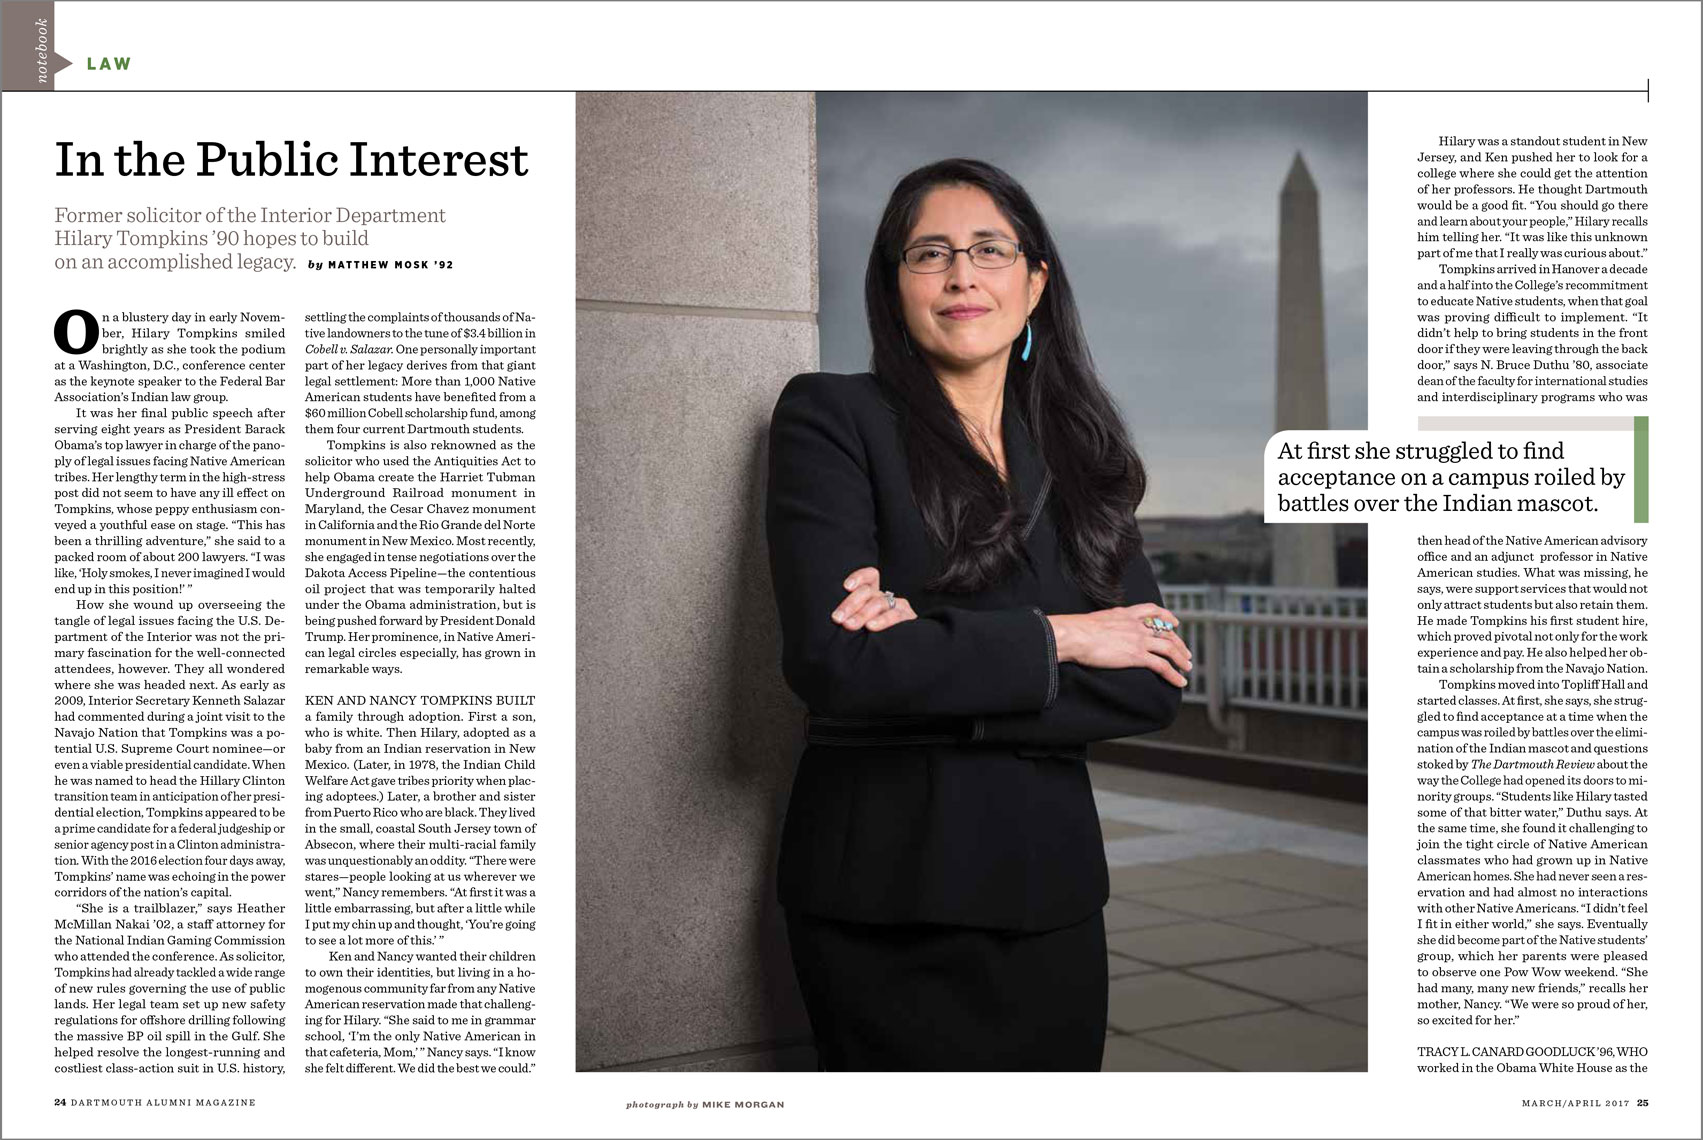 Dartmouth Alumni Magazine spread featuring Hilary Tompkins